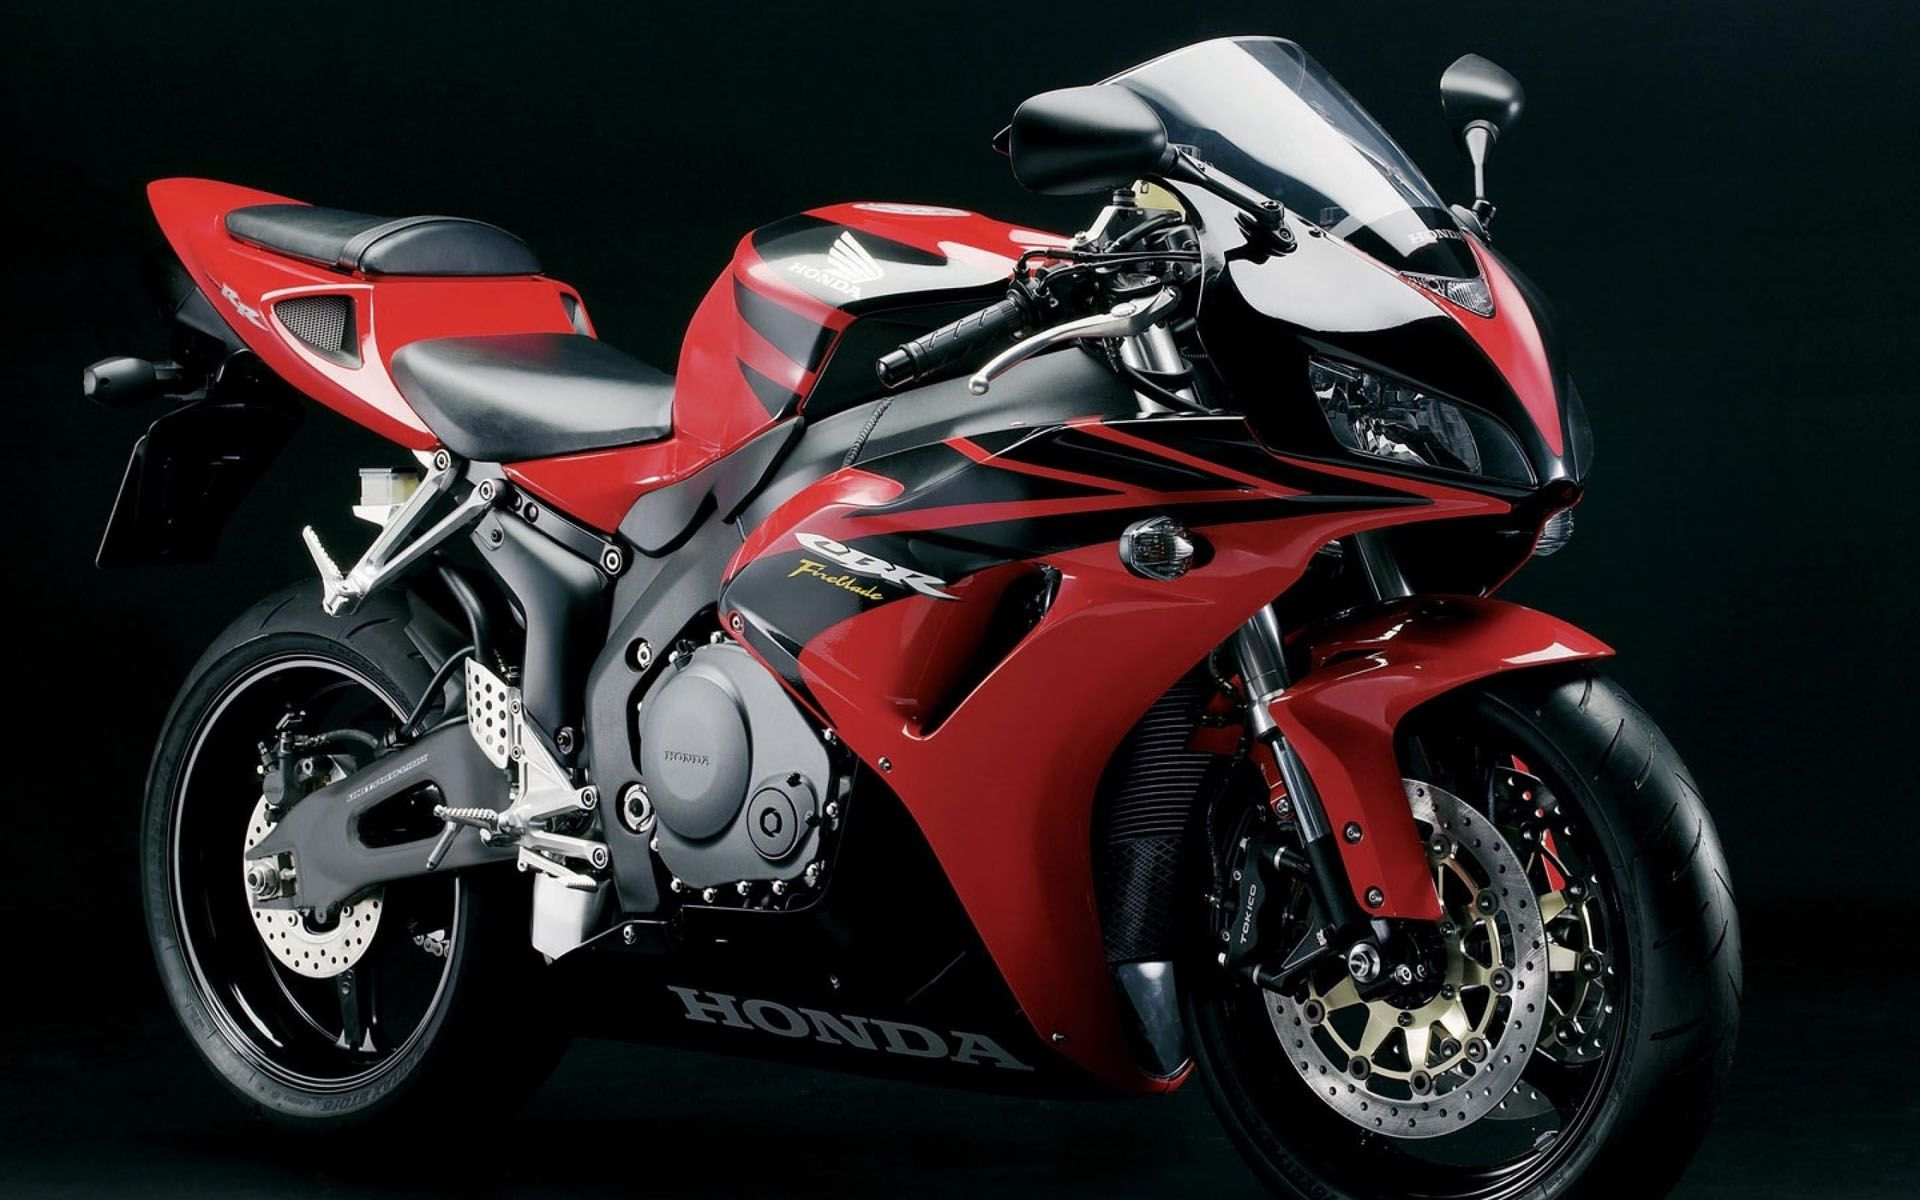 honda cbr 900rr fireblade | 2-wheeler world | pinterest | hd picture